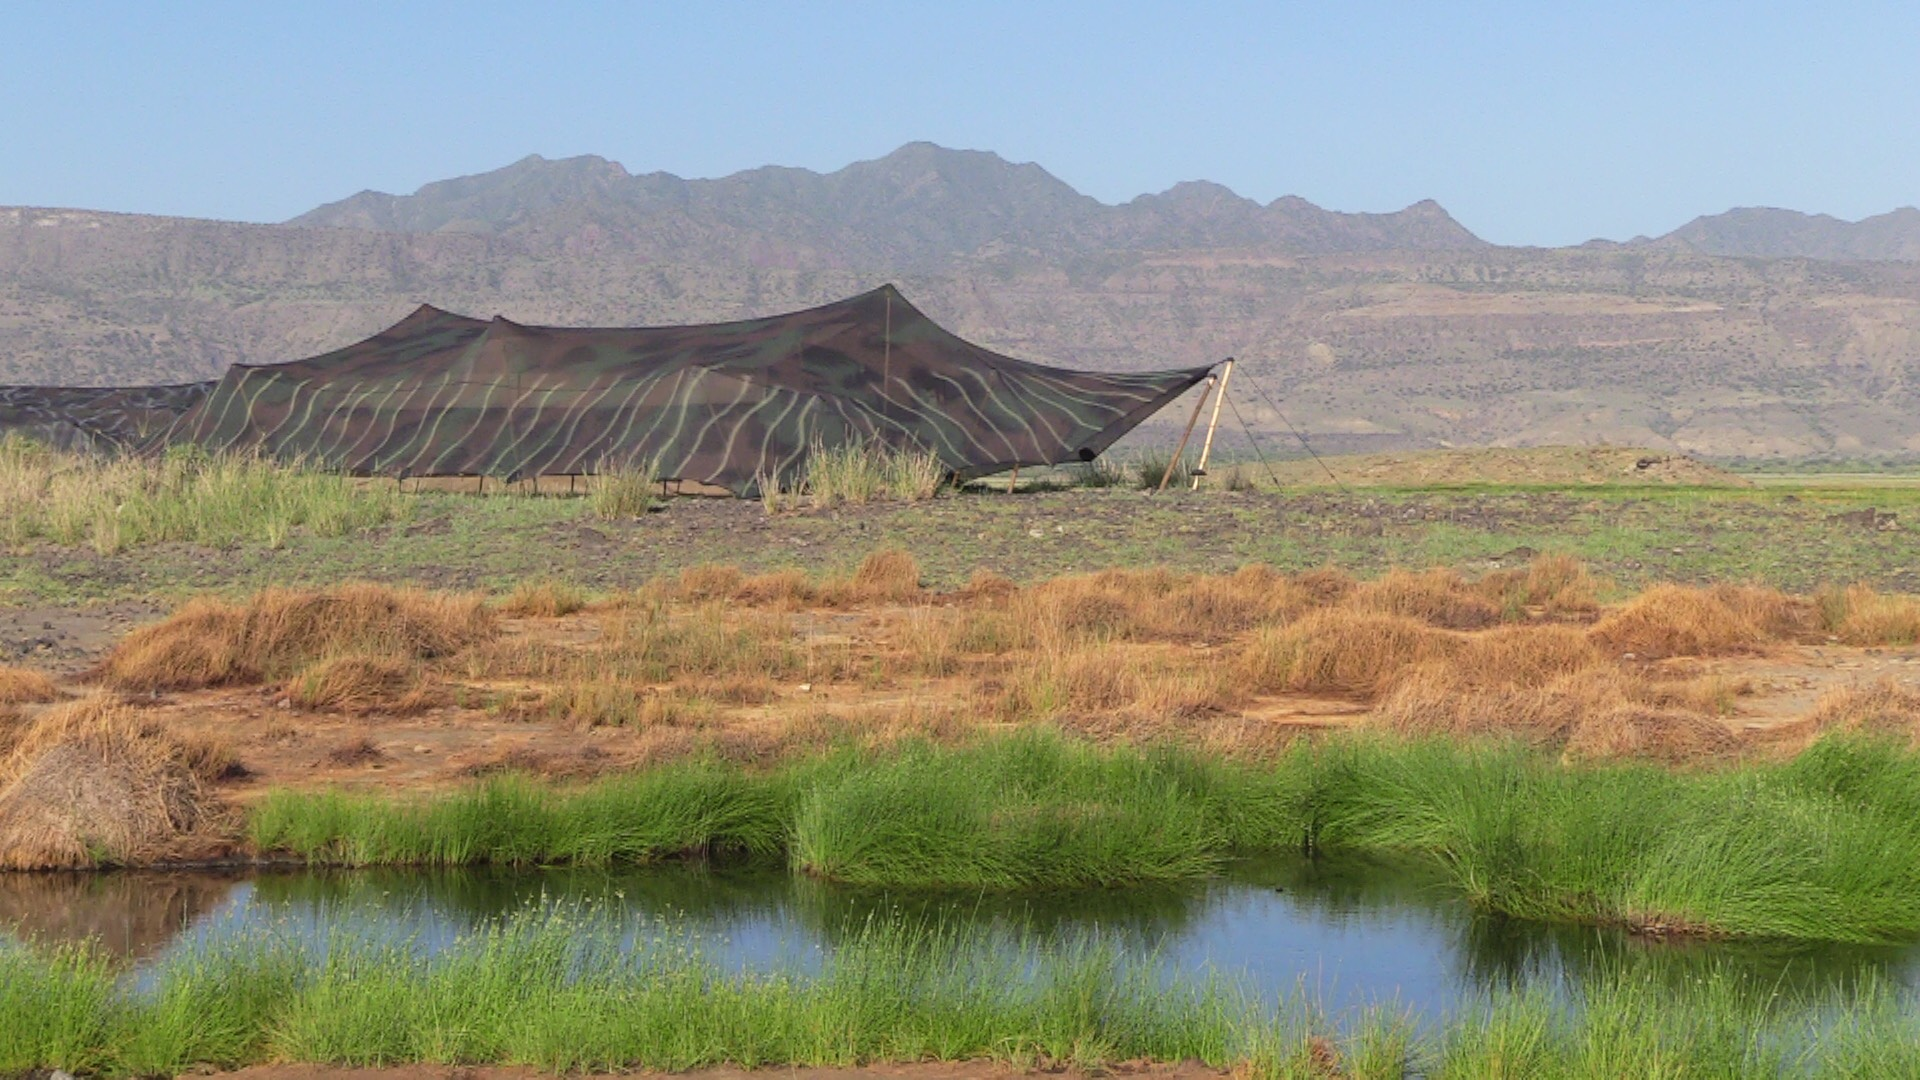 Brian and Dee's tent photographed early this morning at Lake Natron Camp, owned and run by Summits Africa.